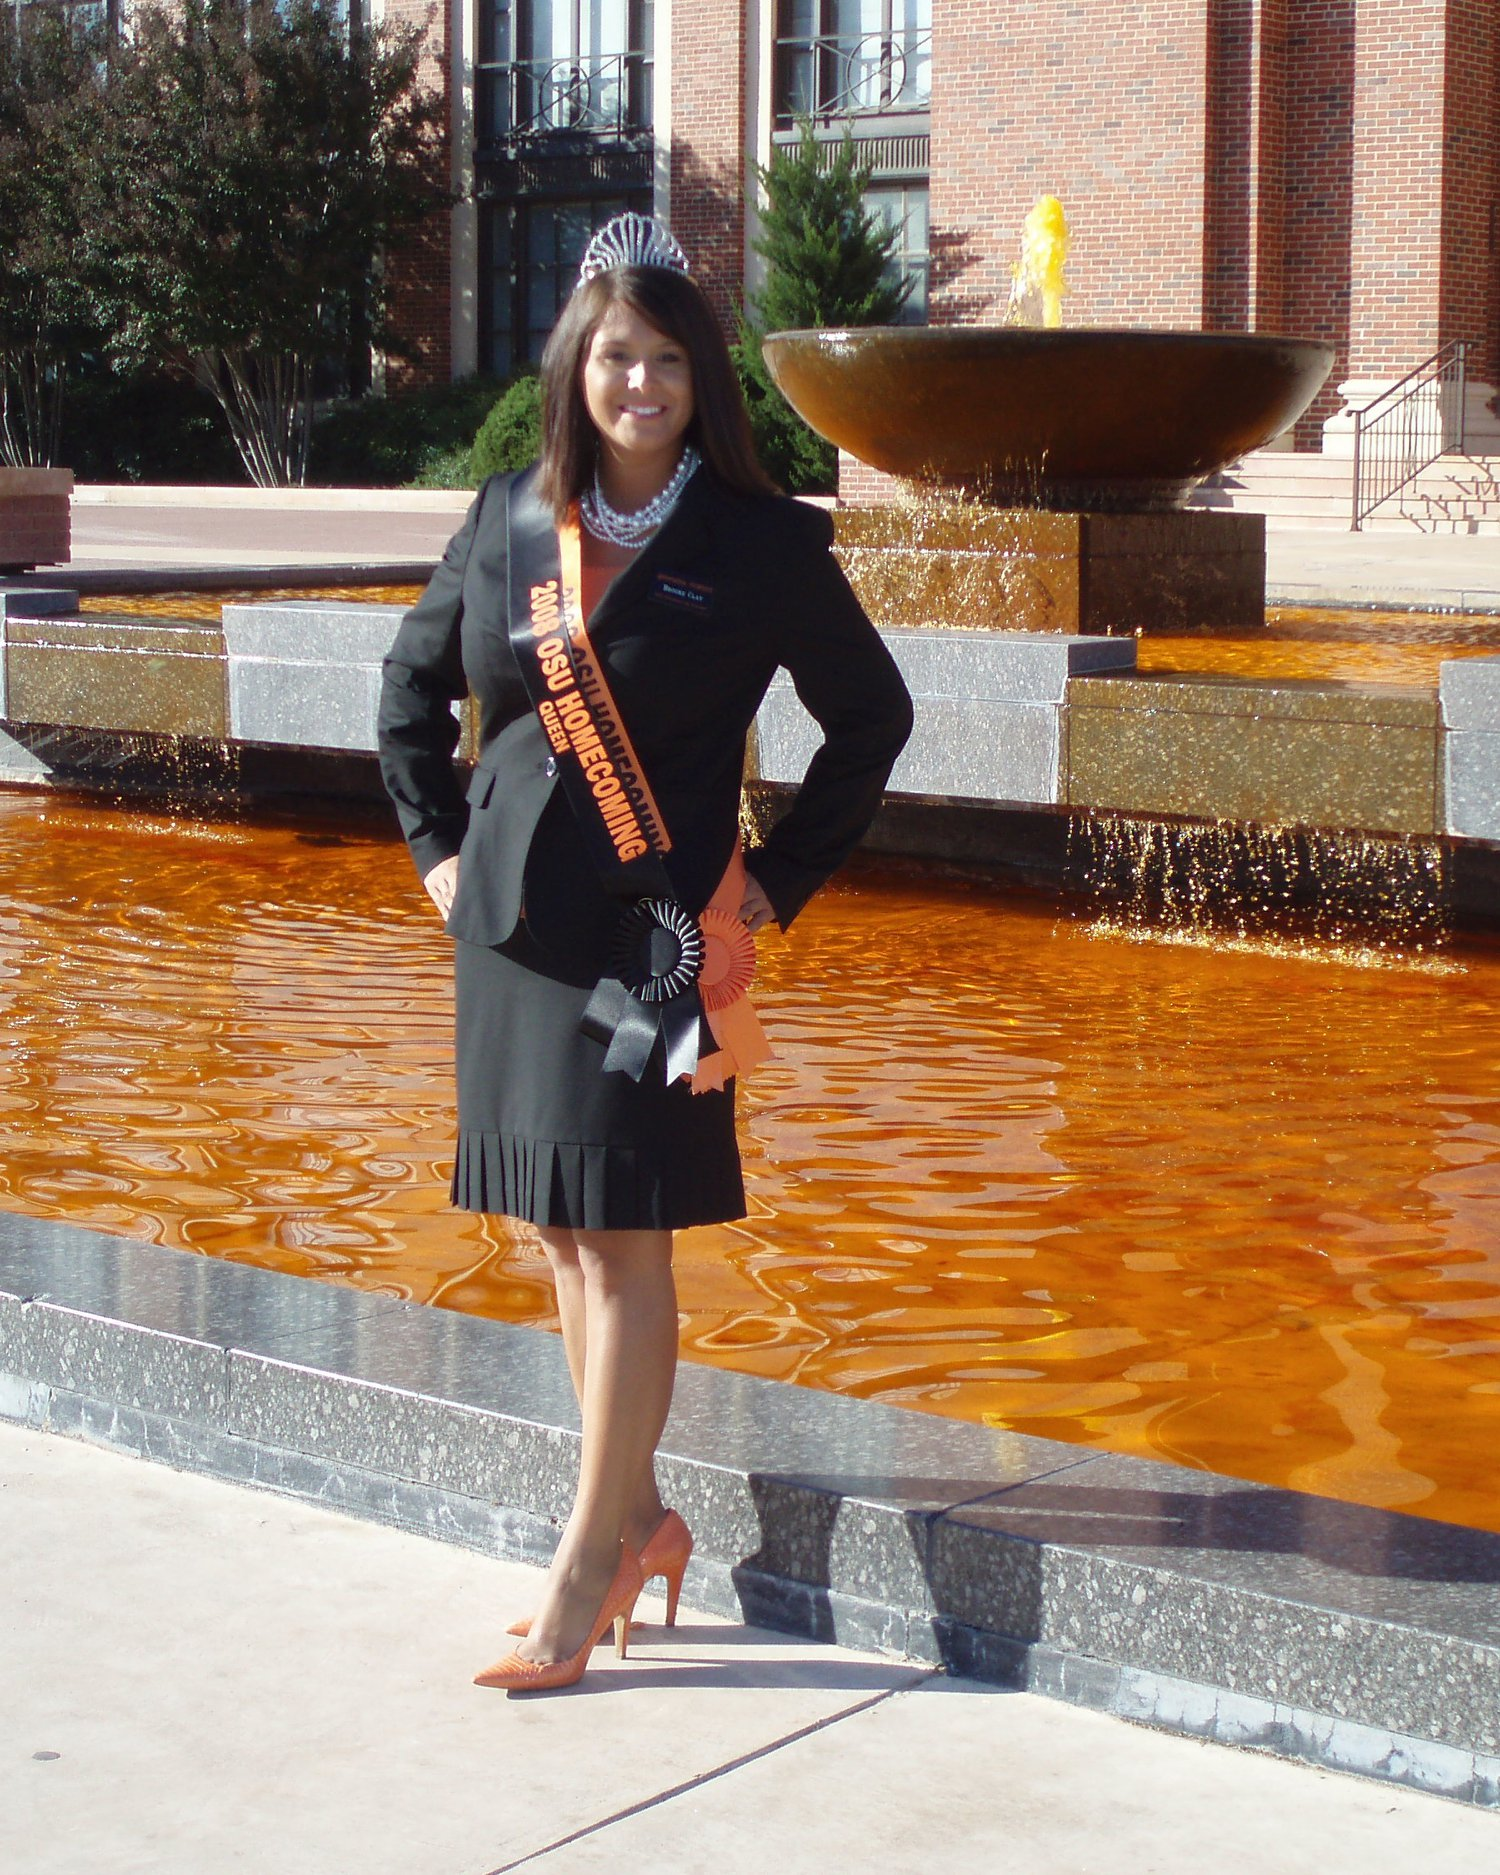 Brooke Clay Taylor: 2008 Homecoming Queen, Oklahoma State University